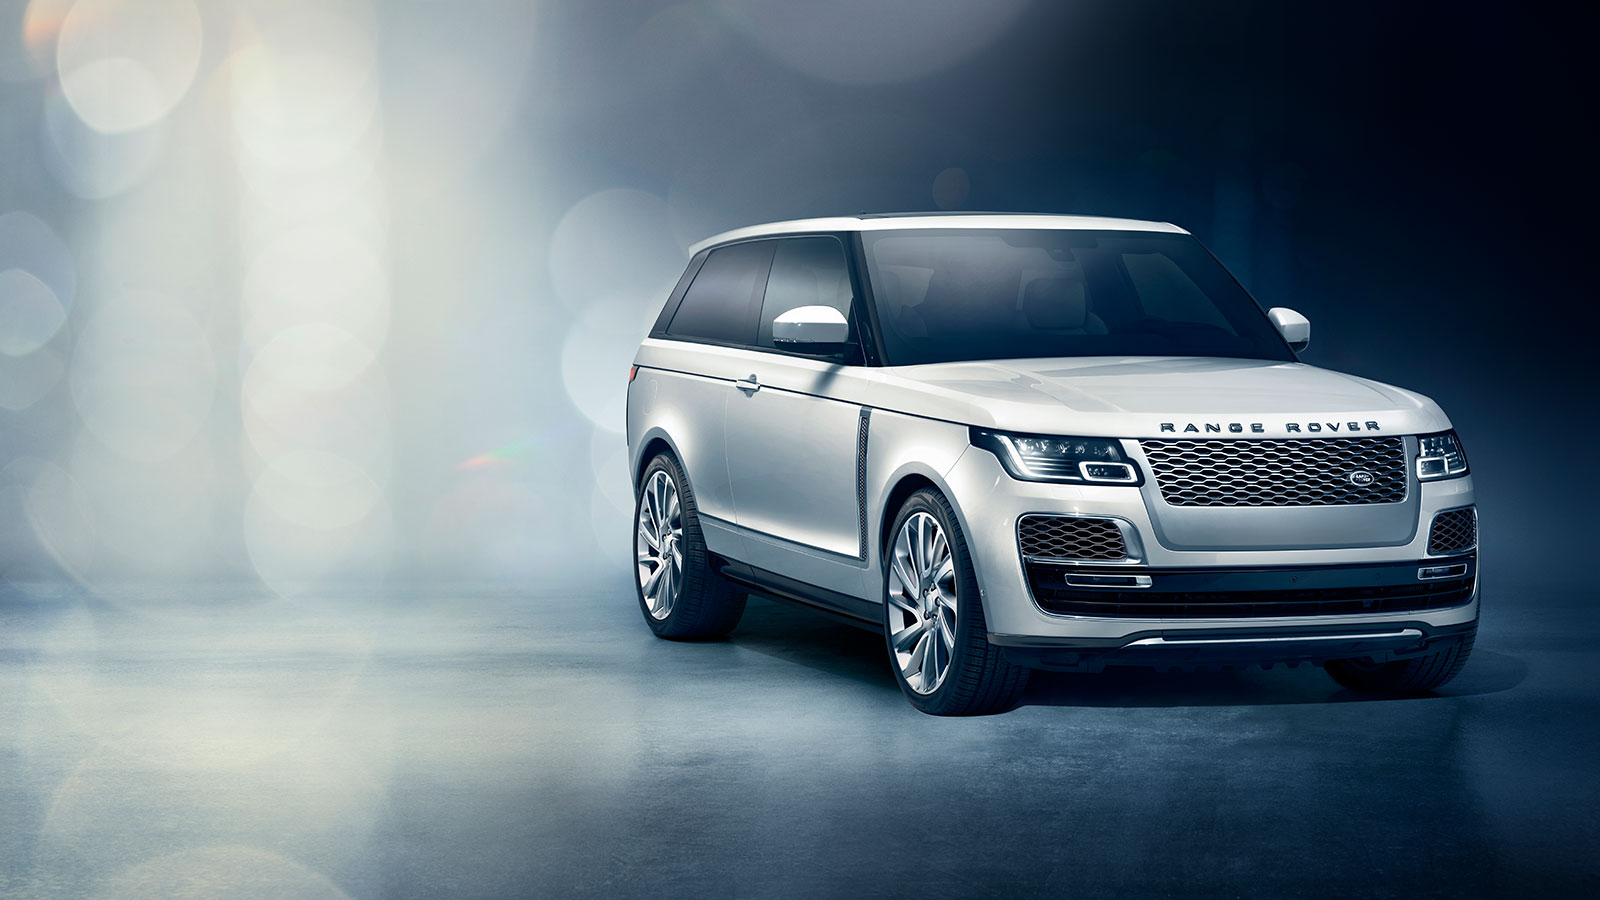 rover img product land landrover sell snellville range thumbnail trade auto usa sales buy express